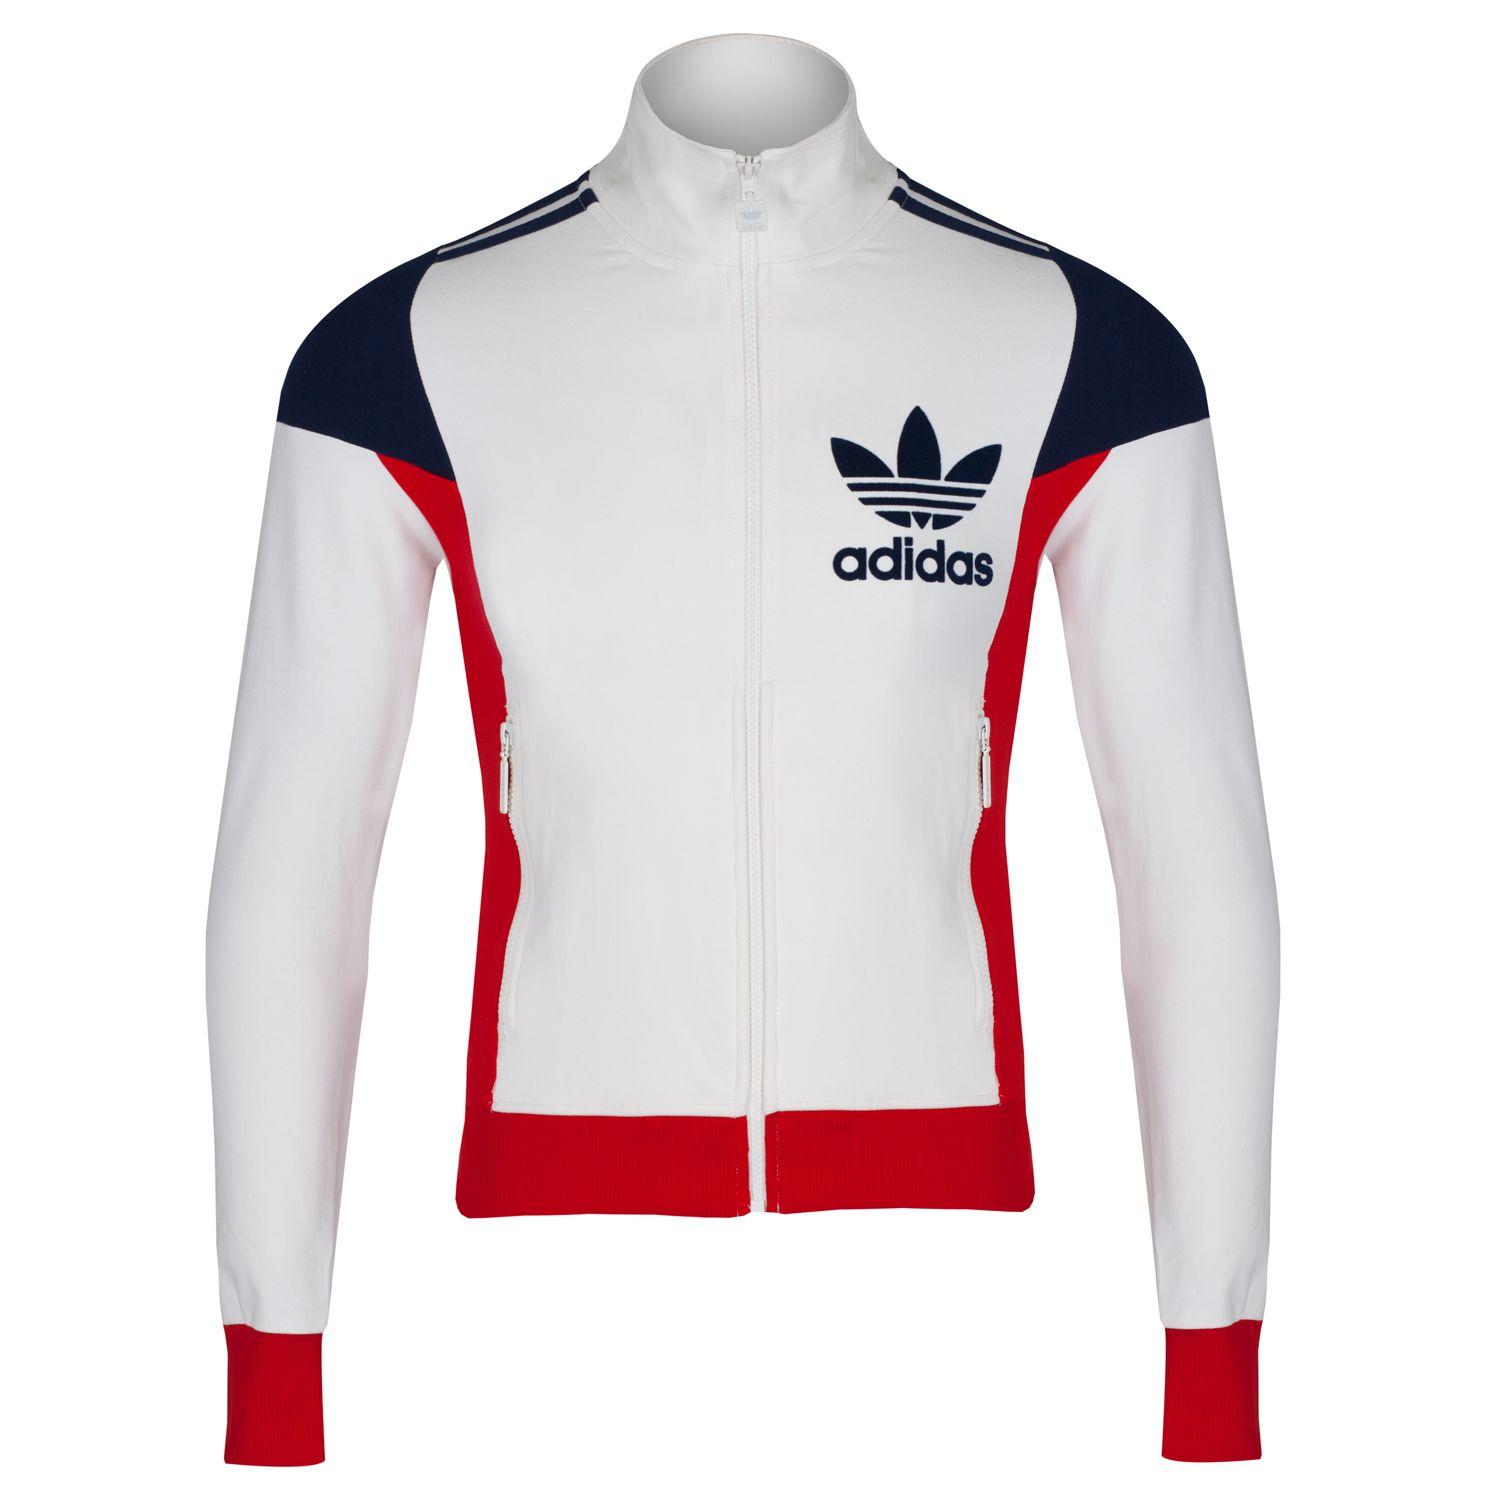 adidas originals 80s track jacket